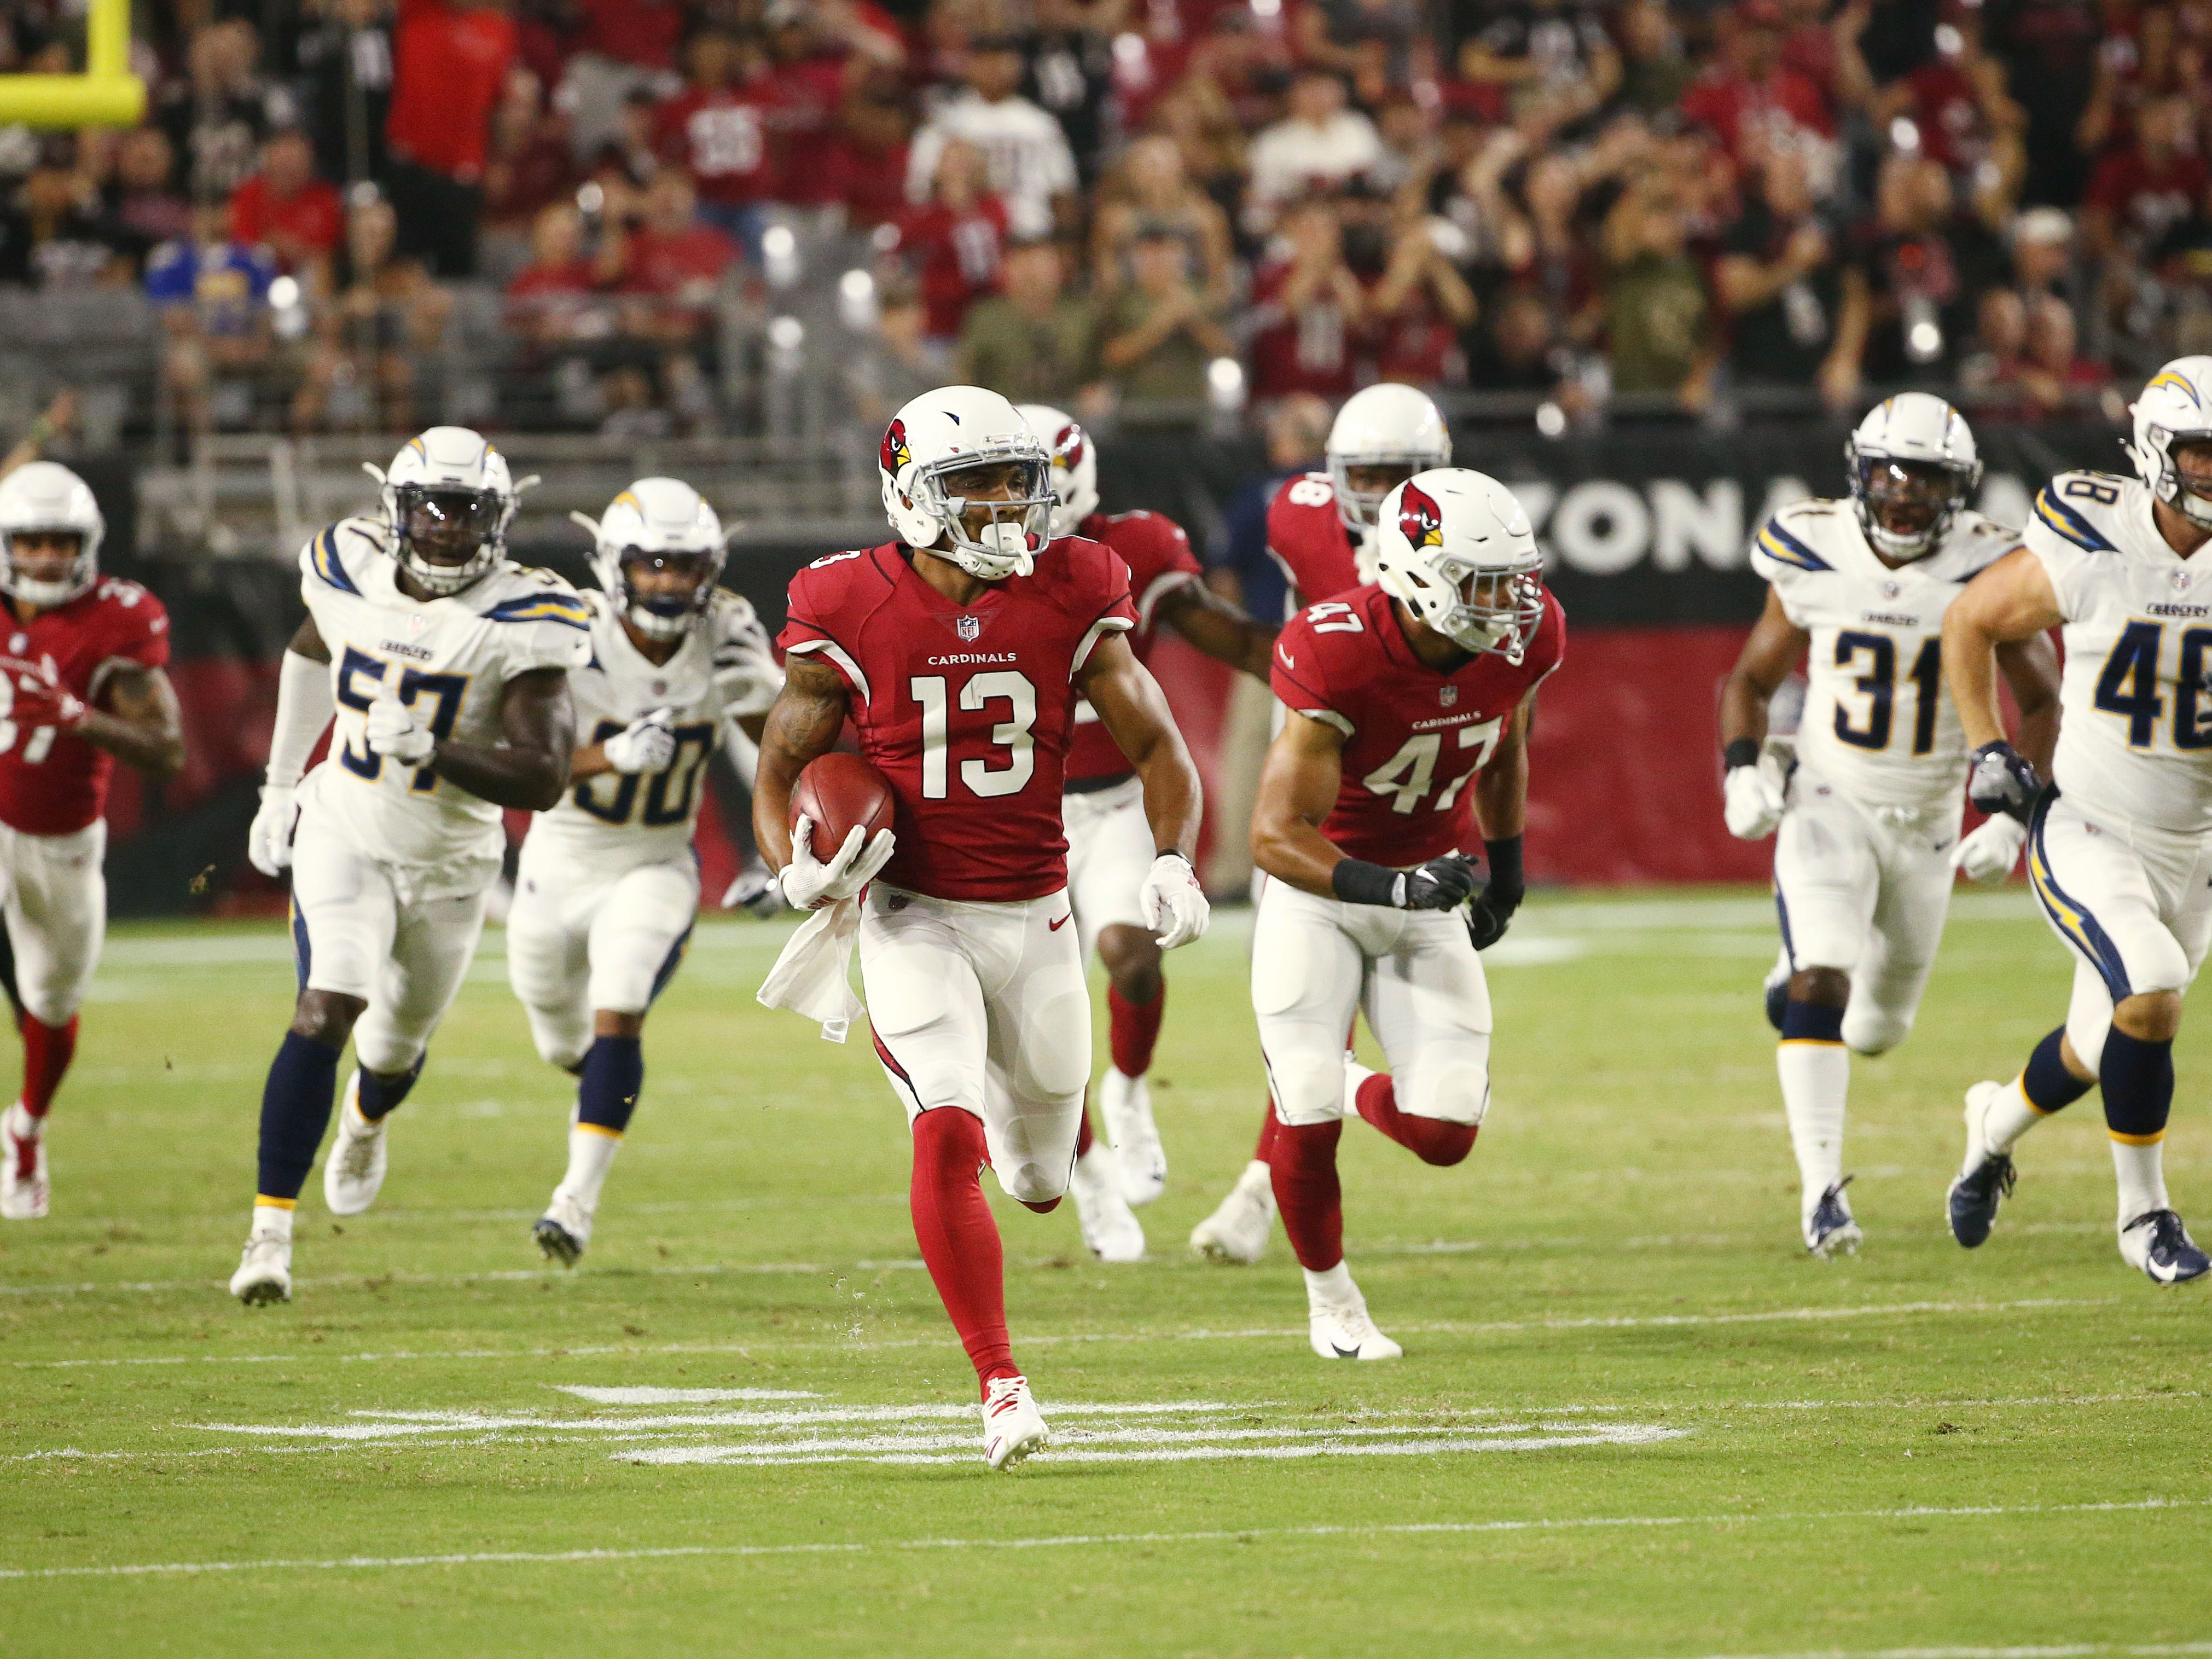 Arizona Cardinals Christian Kirk returns a punt against the L.A. Chargers in the first half during a preseason NFL football game on Aug. 11, 2018 at University of Phoenix Stadium in Glendale, Ariz.